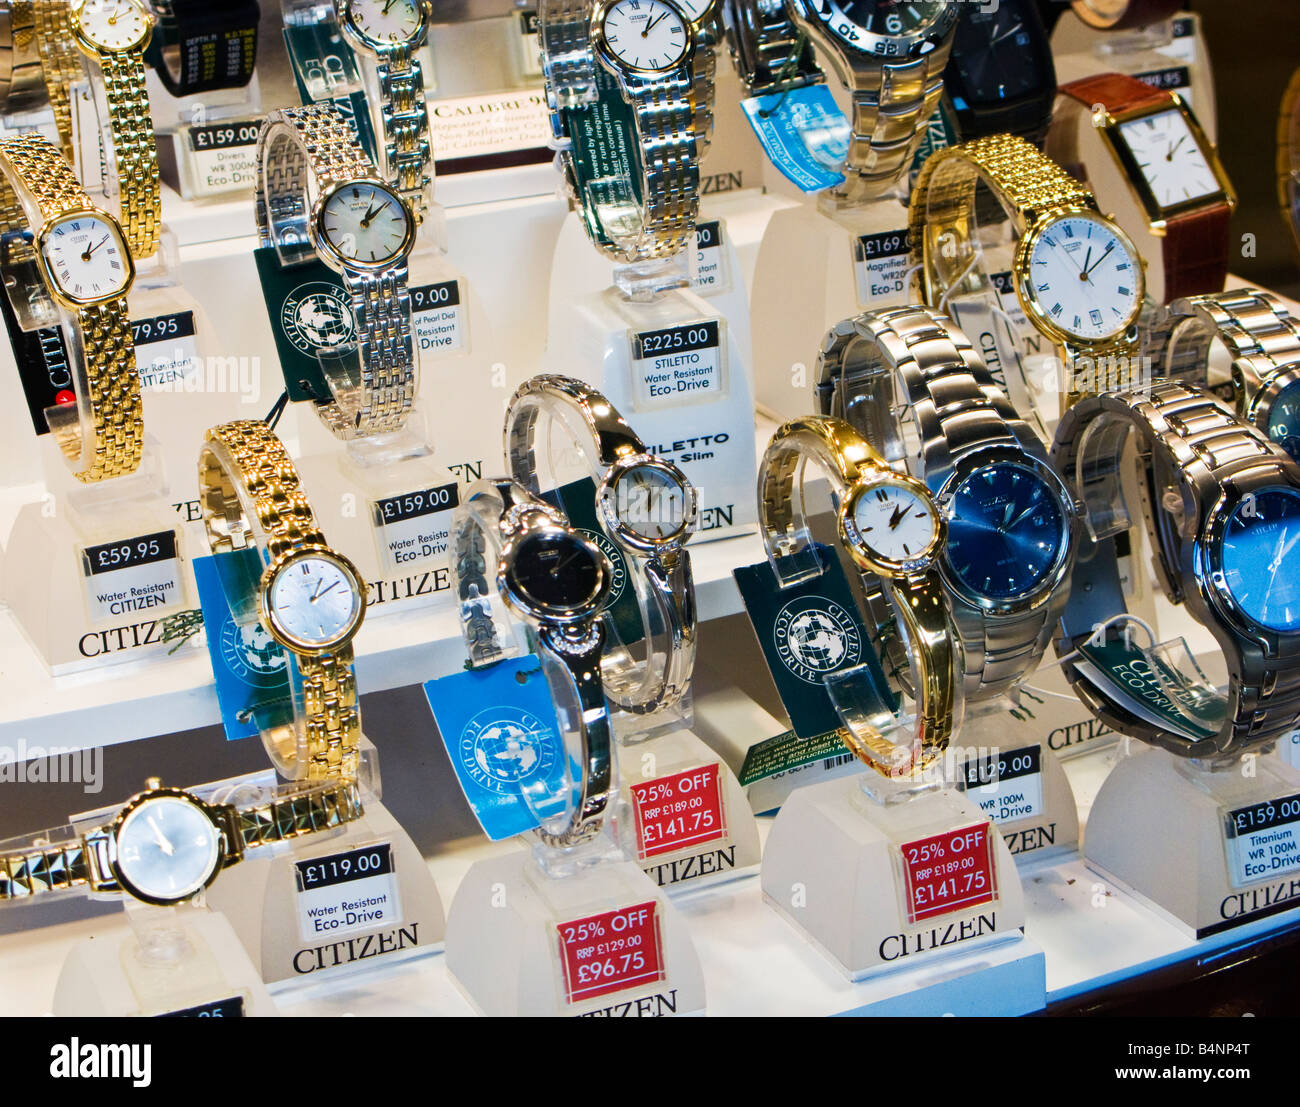 Wrist watches on display in the window of a Jewelery store UK - Stock Image